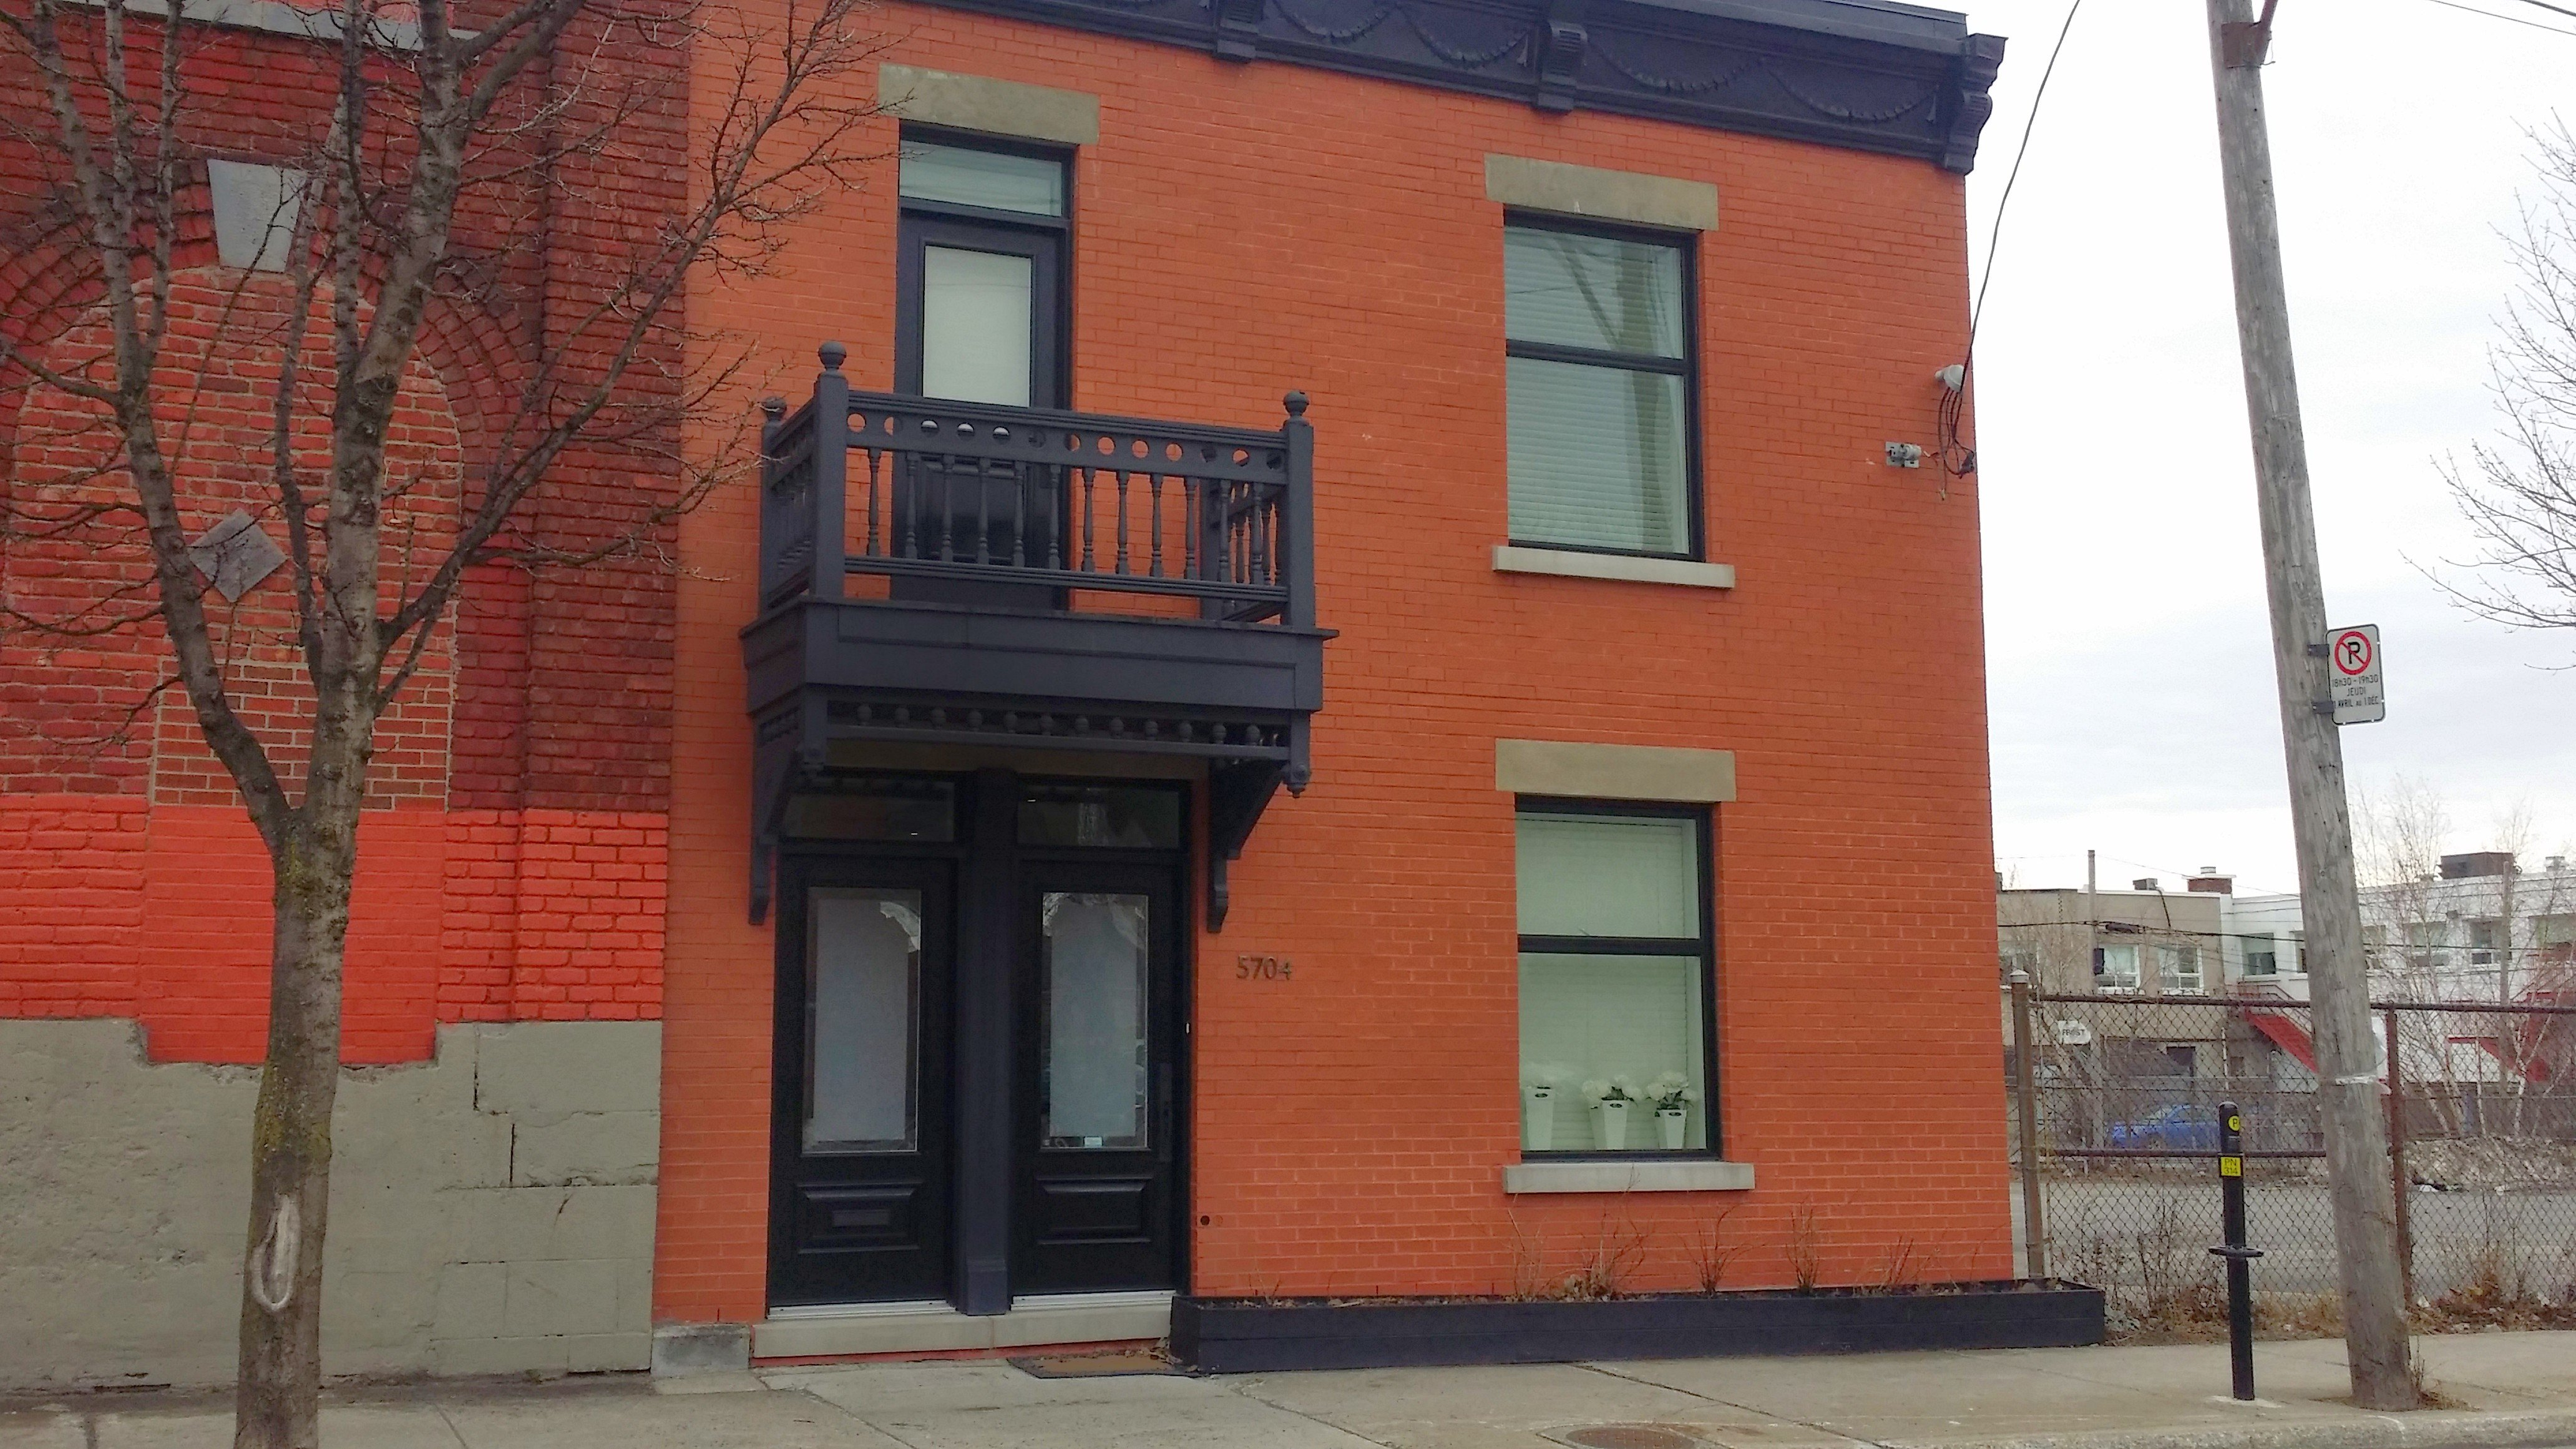 Renovated Homes and Architecture